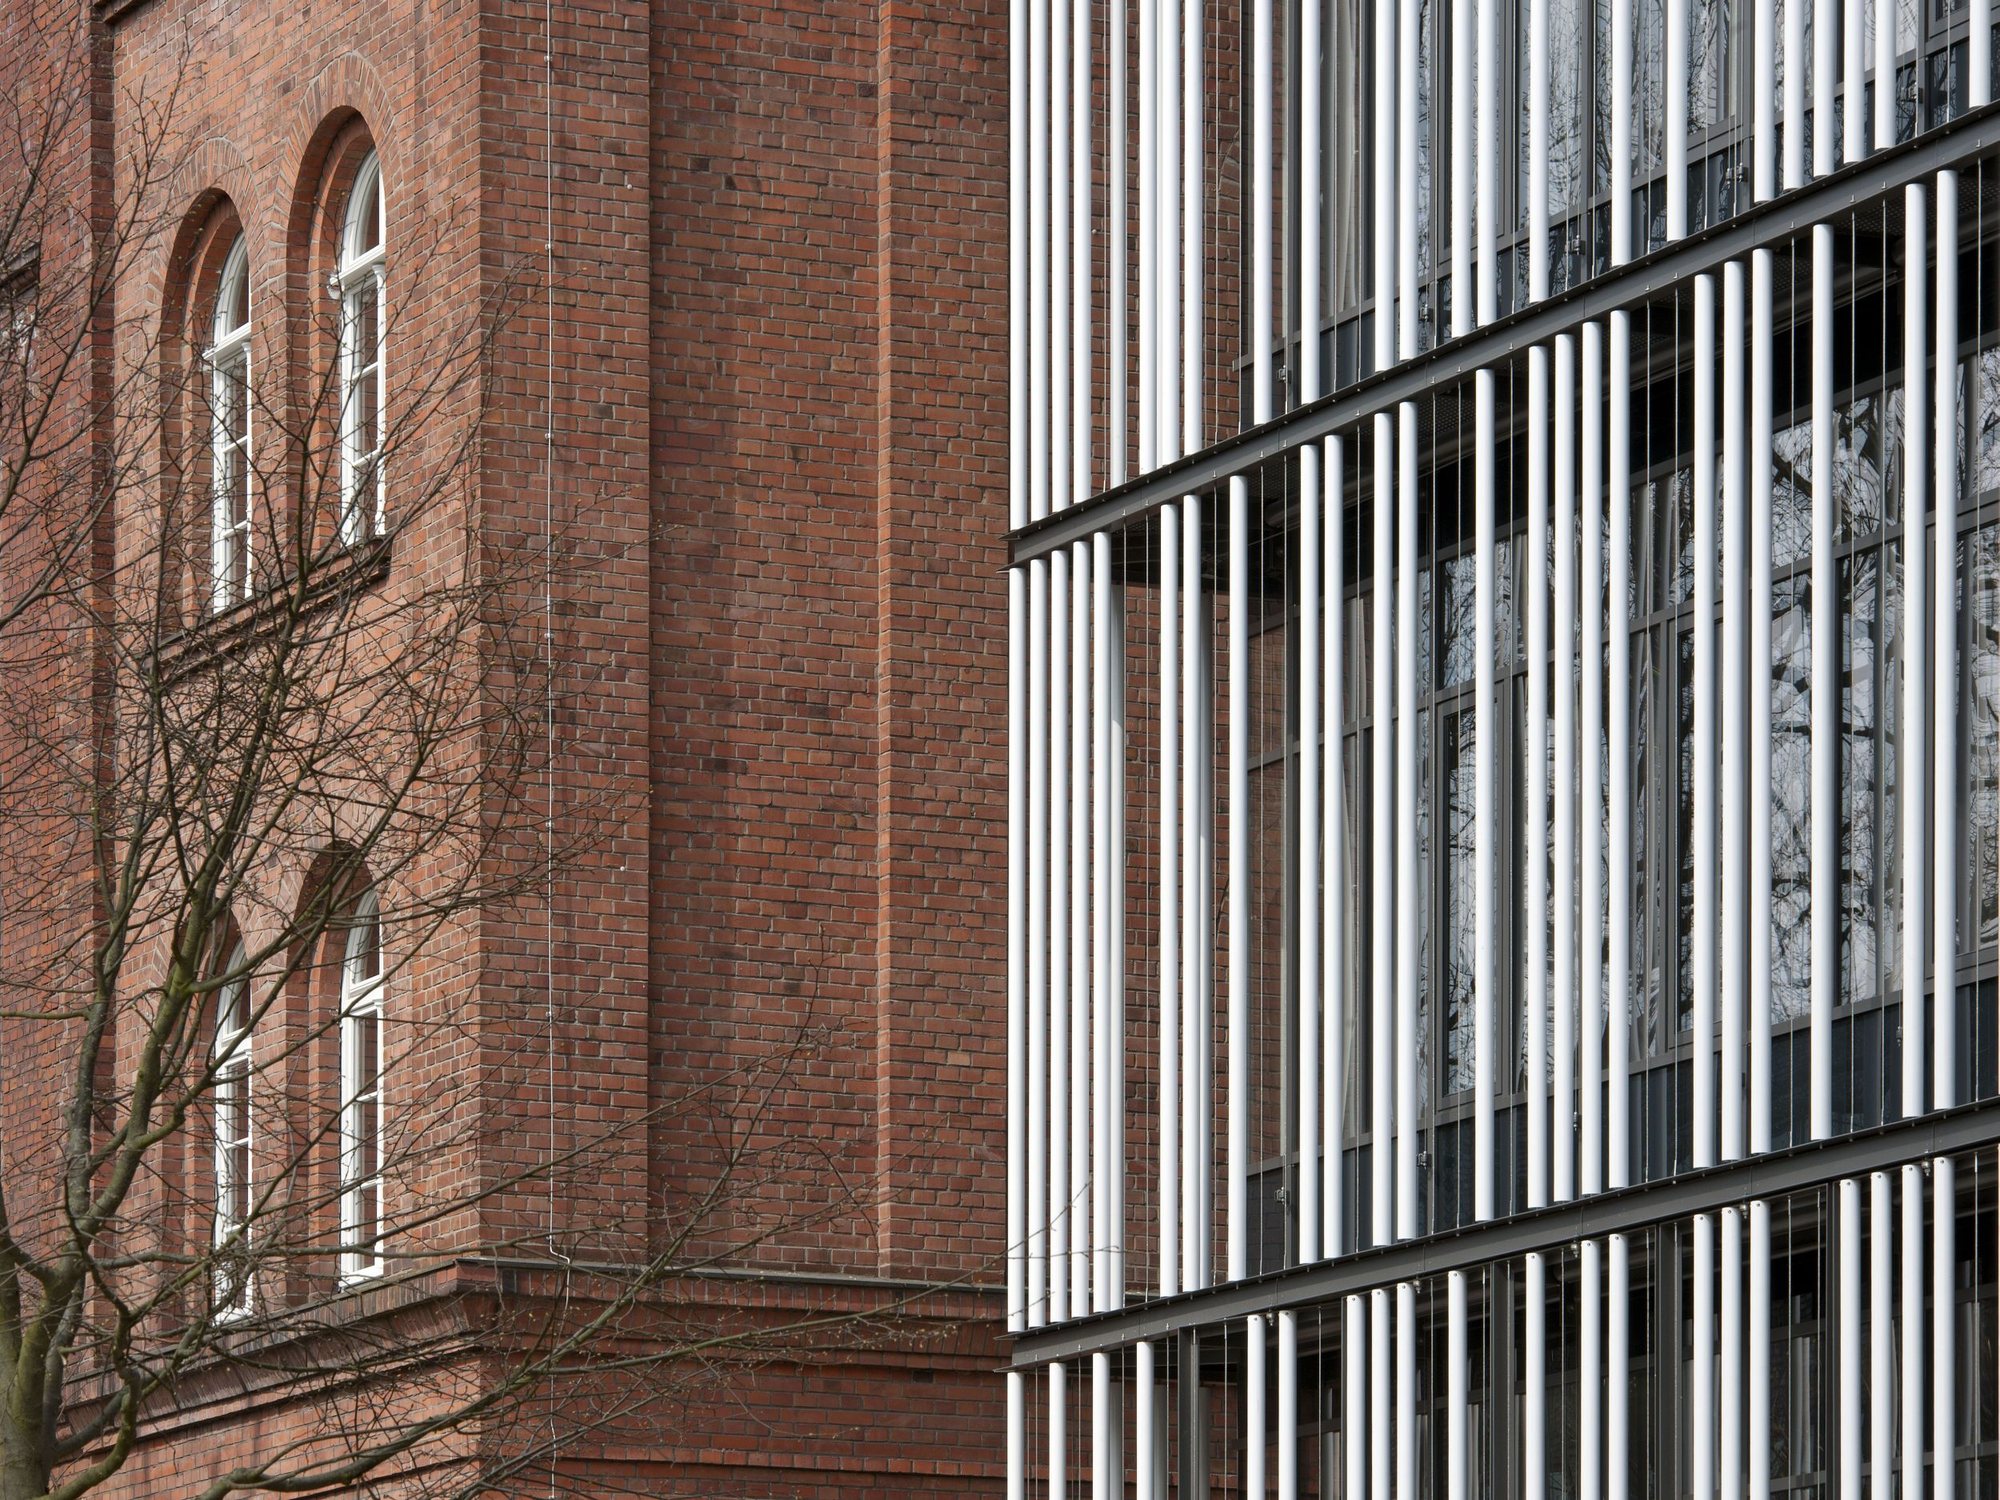 Hamburg-Harburg Technical University Extension / gmp Architekten